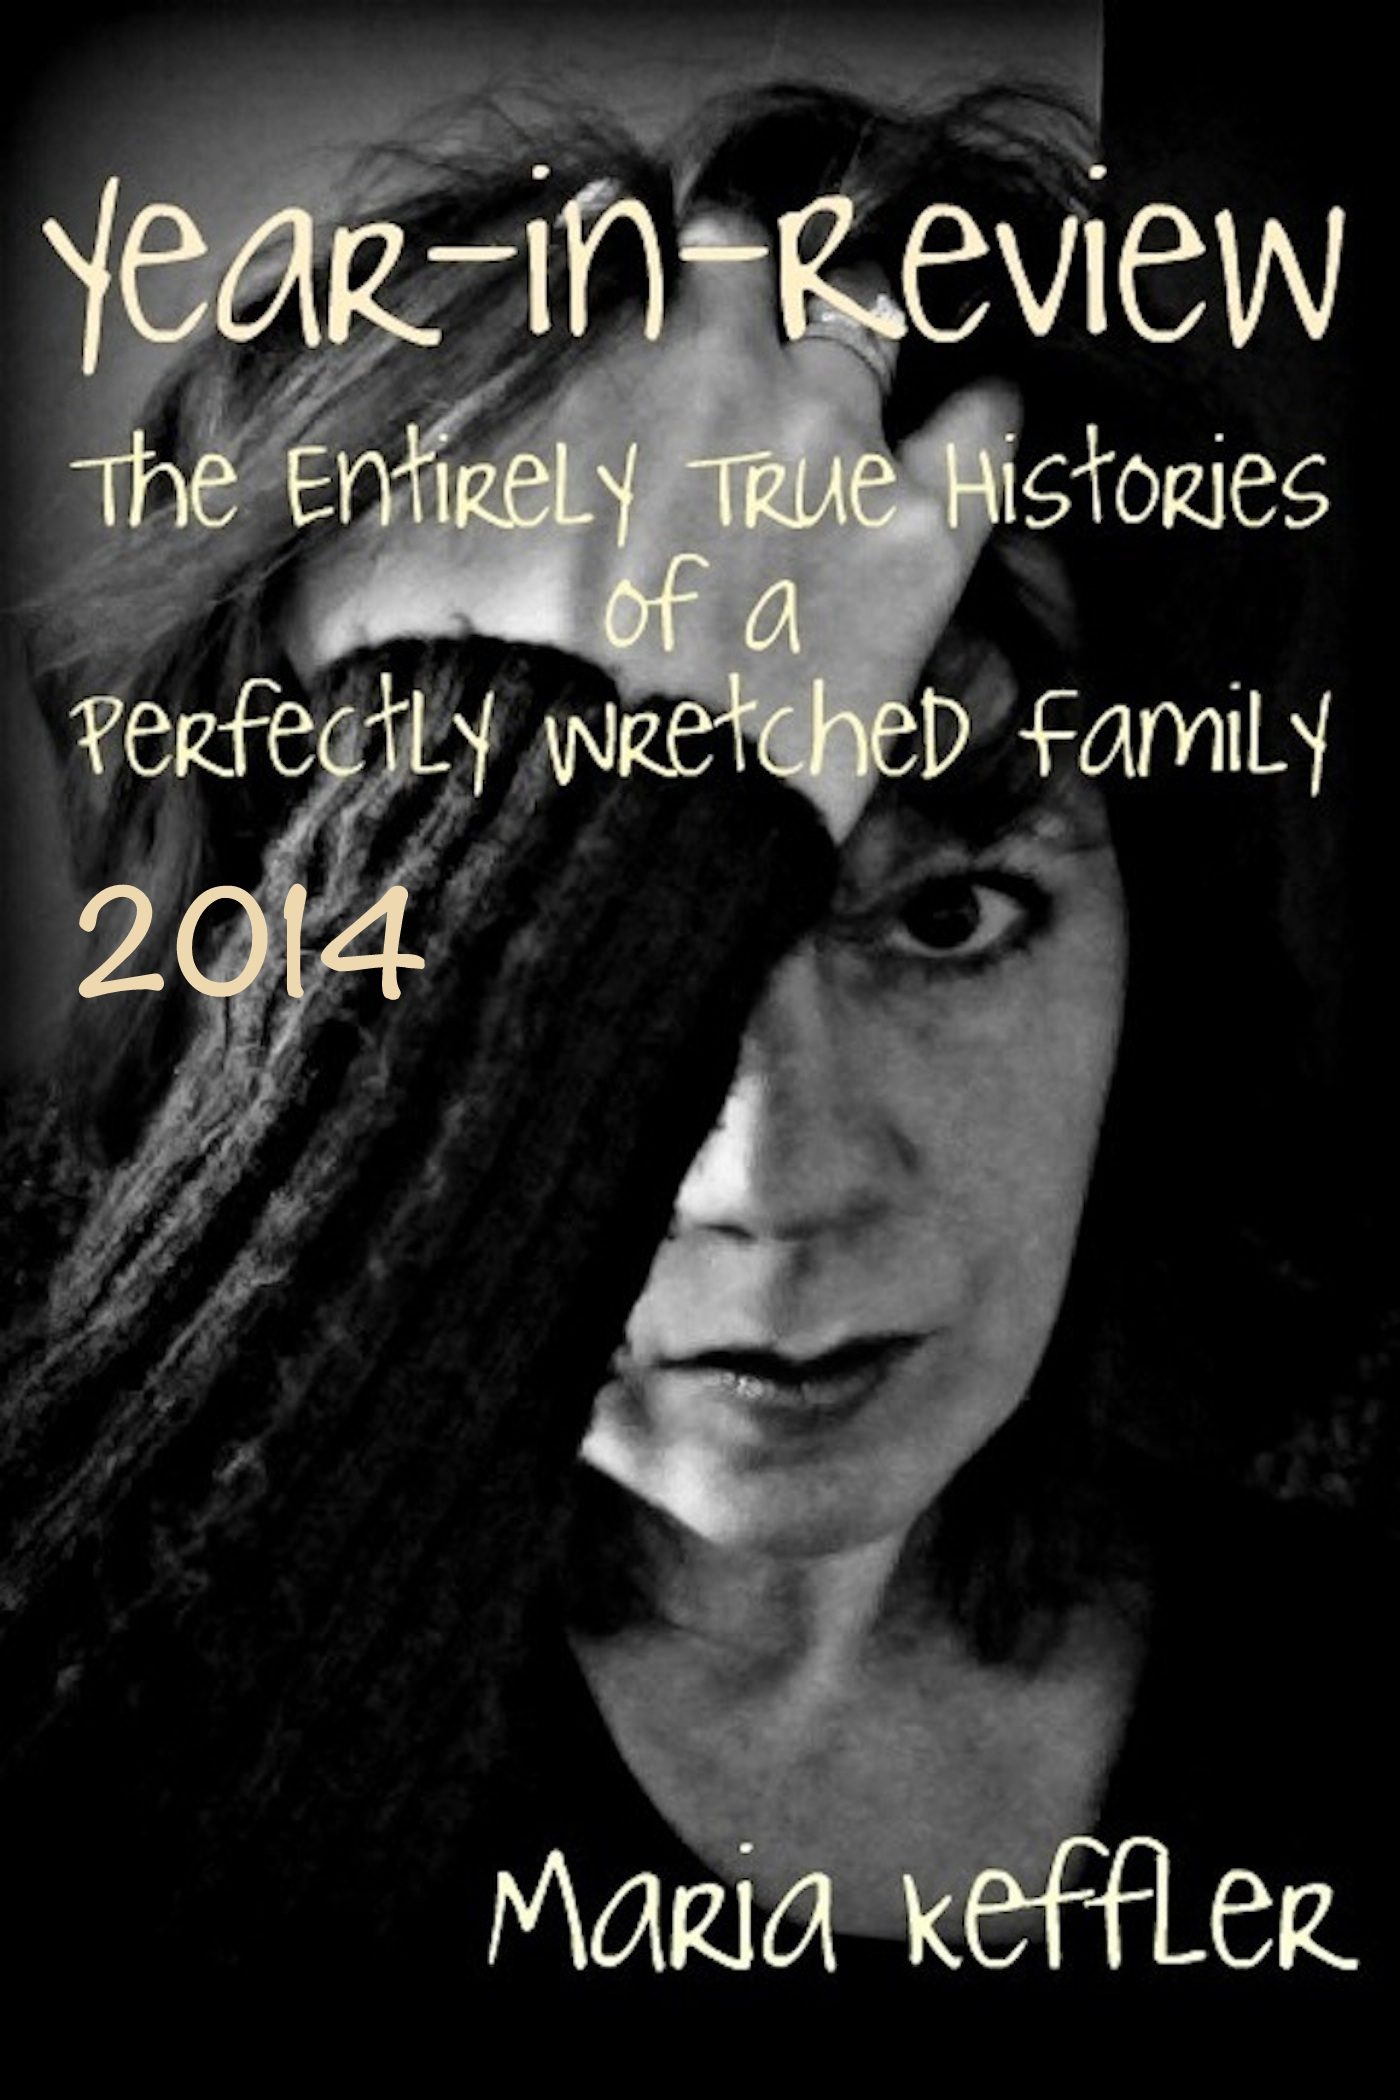 Year-in-Review: the Entirely True Histories of a Perfectly Wretched Family